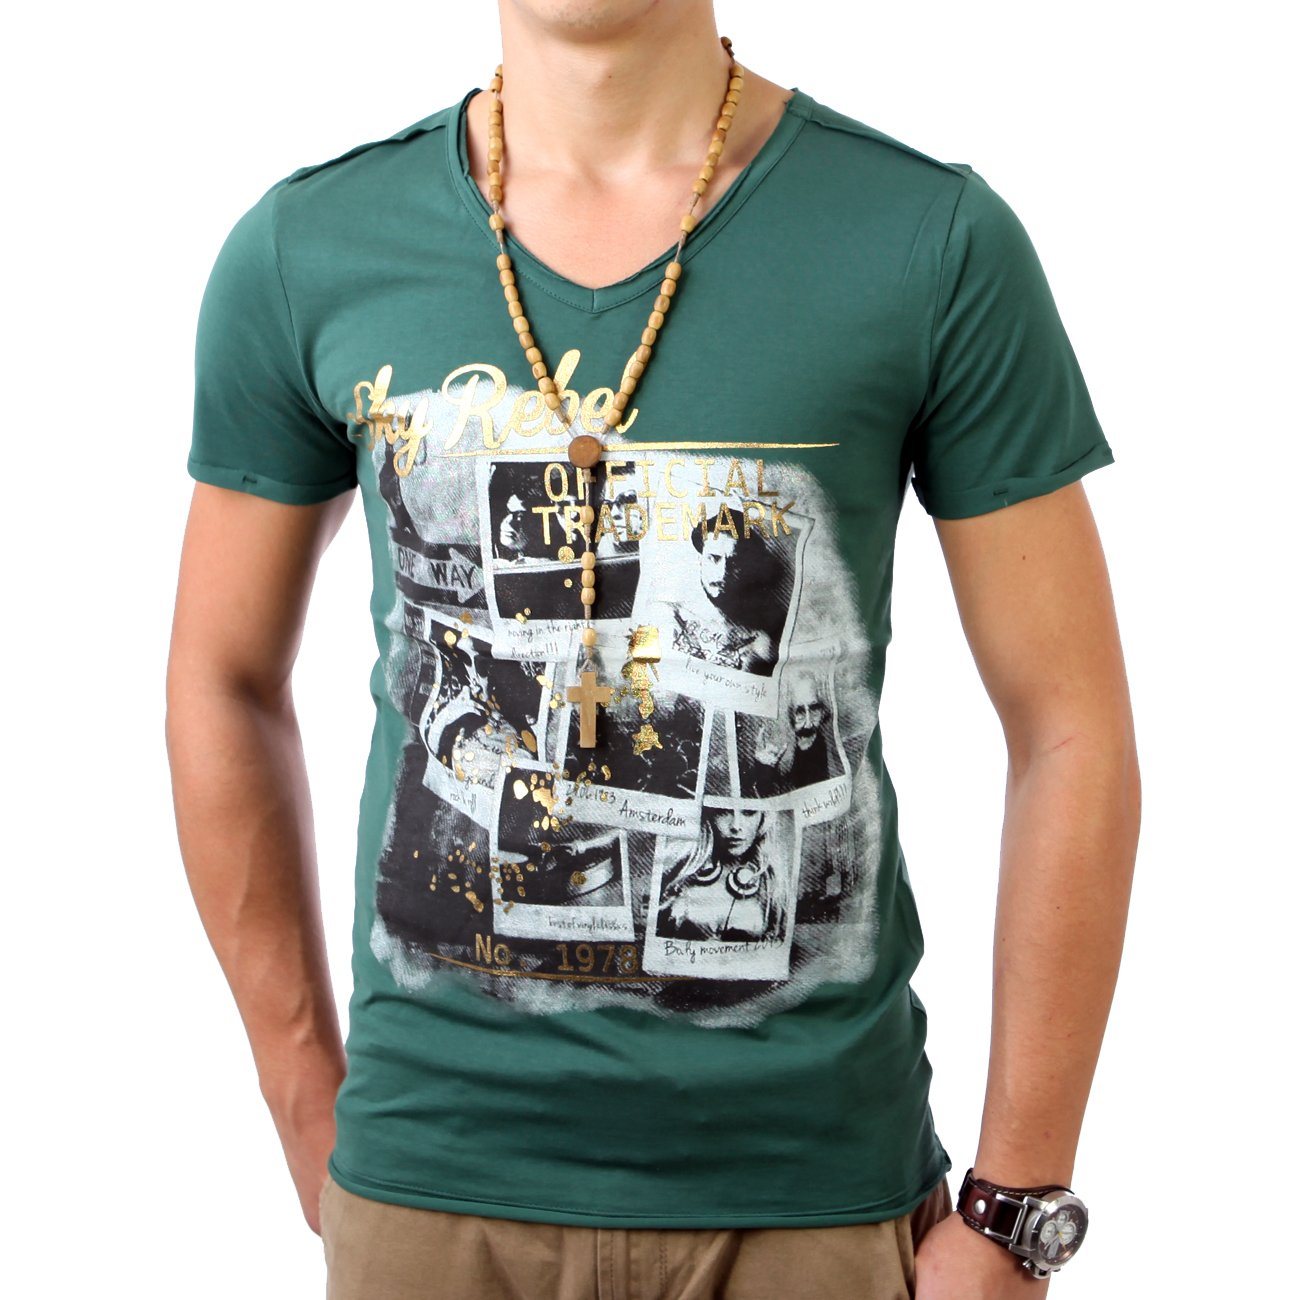 T shirt herren mit print v neck skyrebel g nstig kaufen for T shirt printing local area